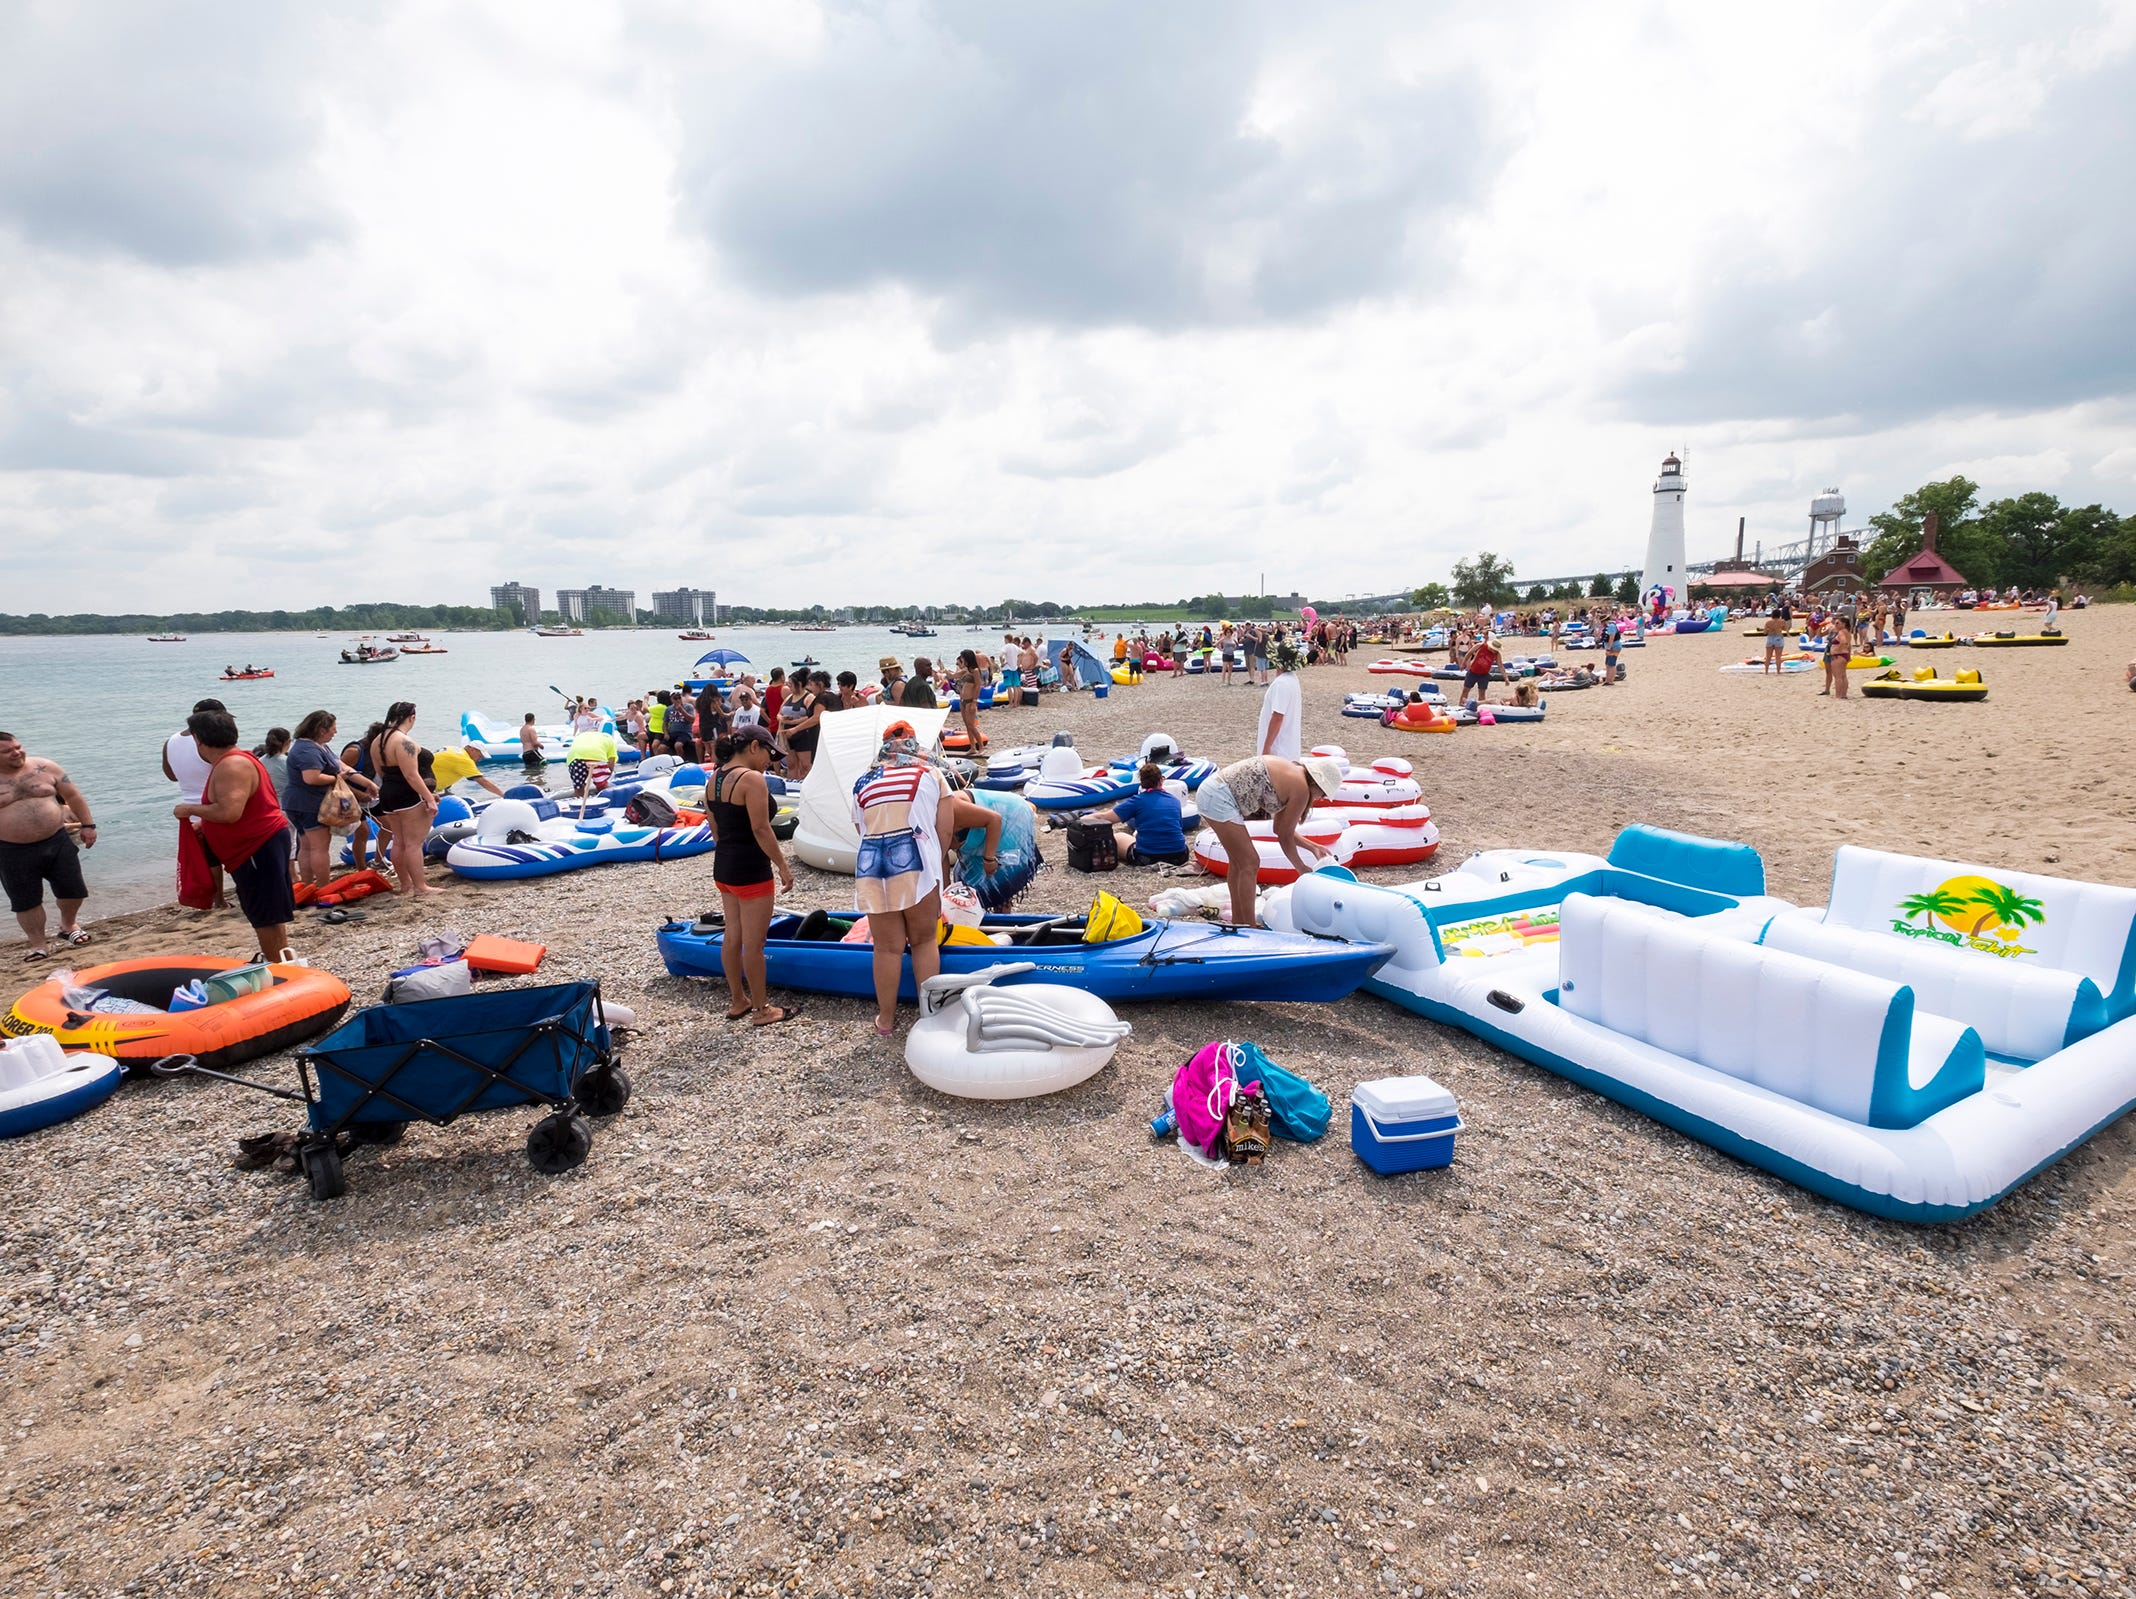 Float Down participants fill Lighthouse Beach Sunday, Aug. 19, 2018, before the annual event launches.